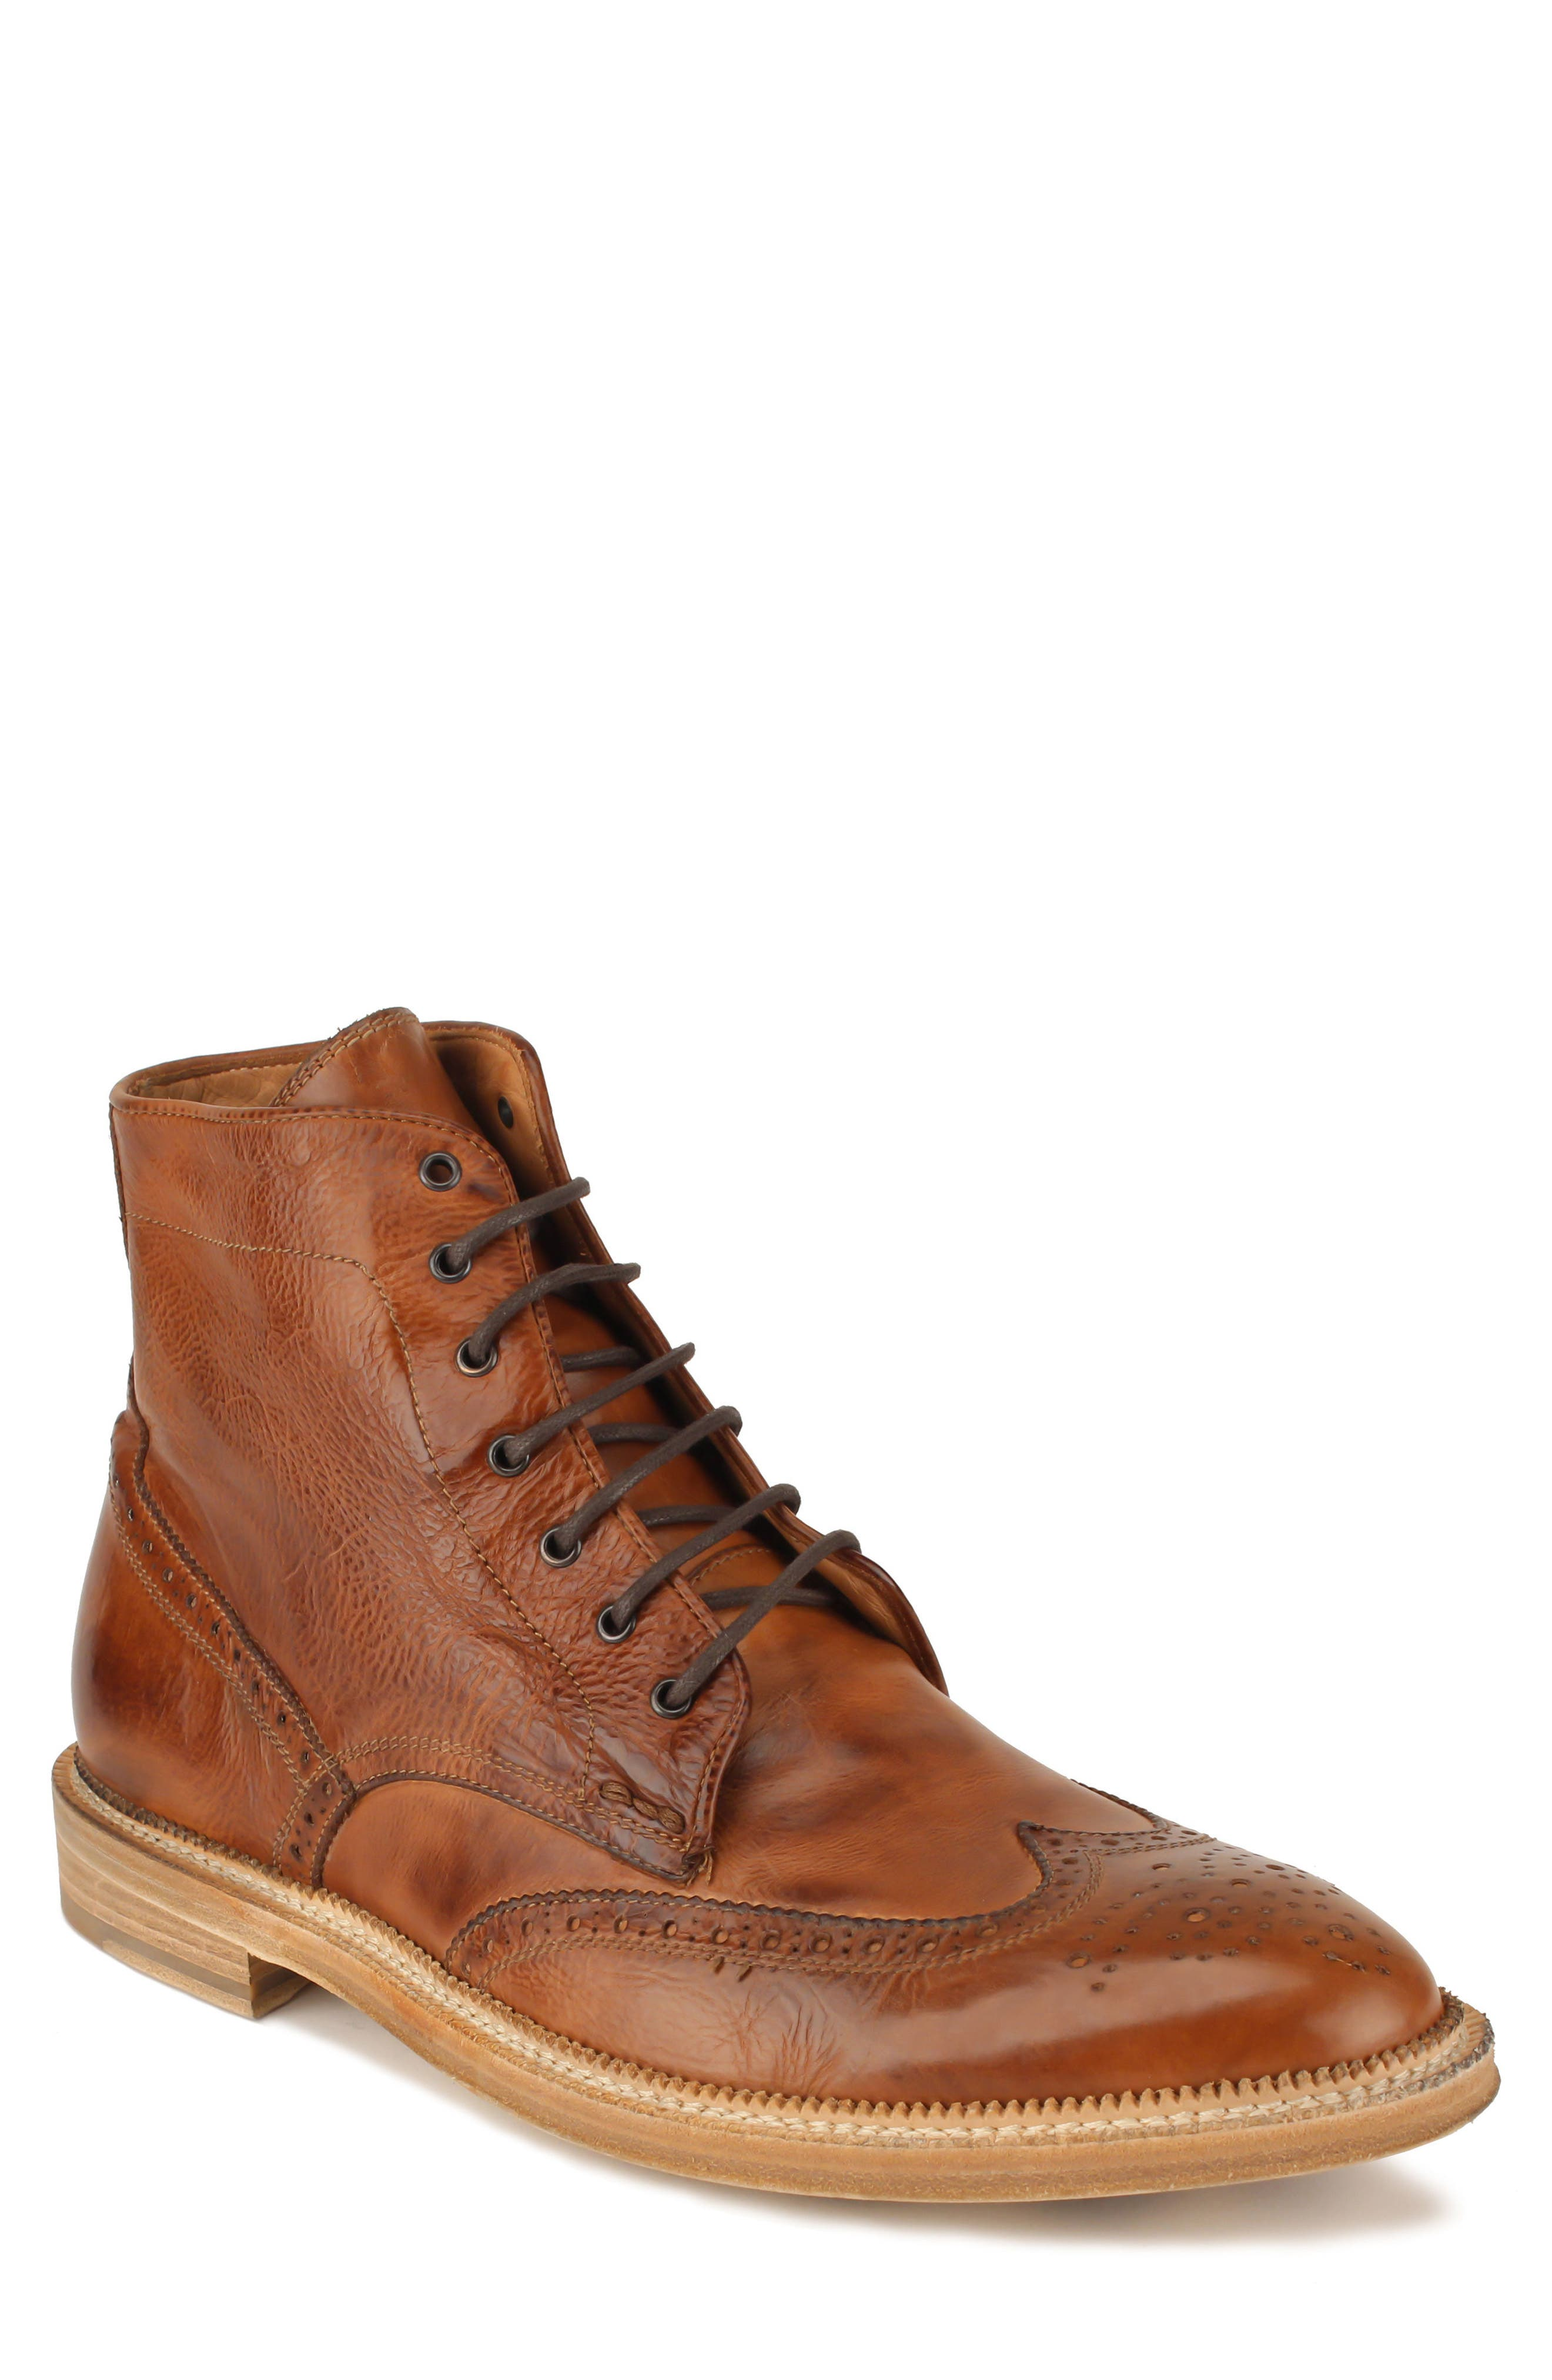 Max Wingtip Boot,                         Main,                         color, WALNUT LEATHER